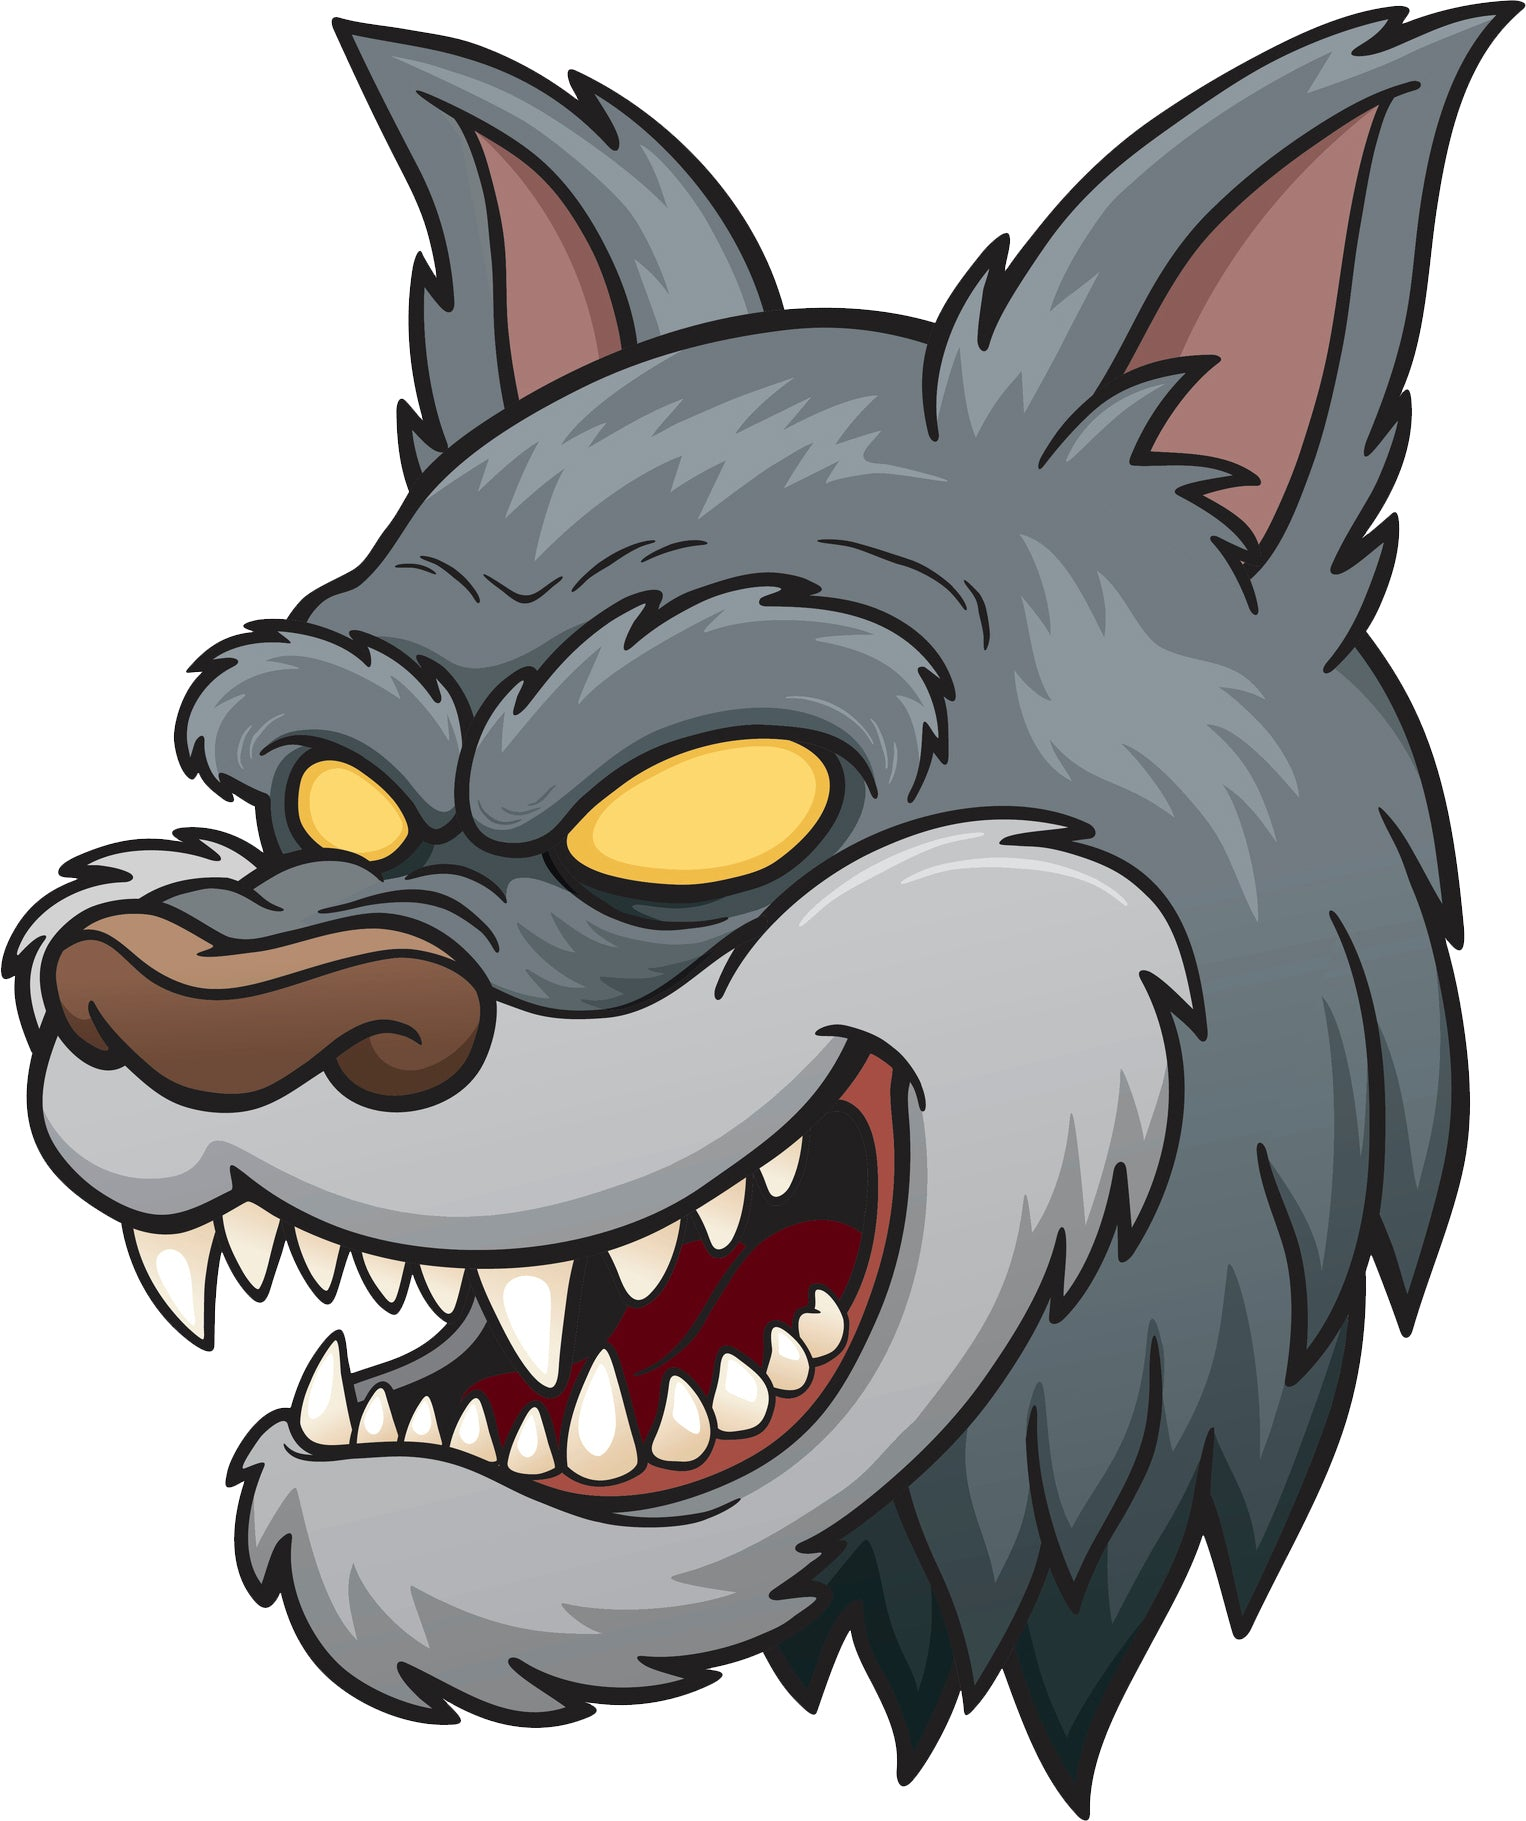 Creepy Angry Zoo Animal Head Cartoon - Wolf Vinyl Decal Sticker